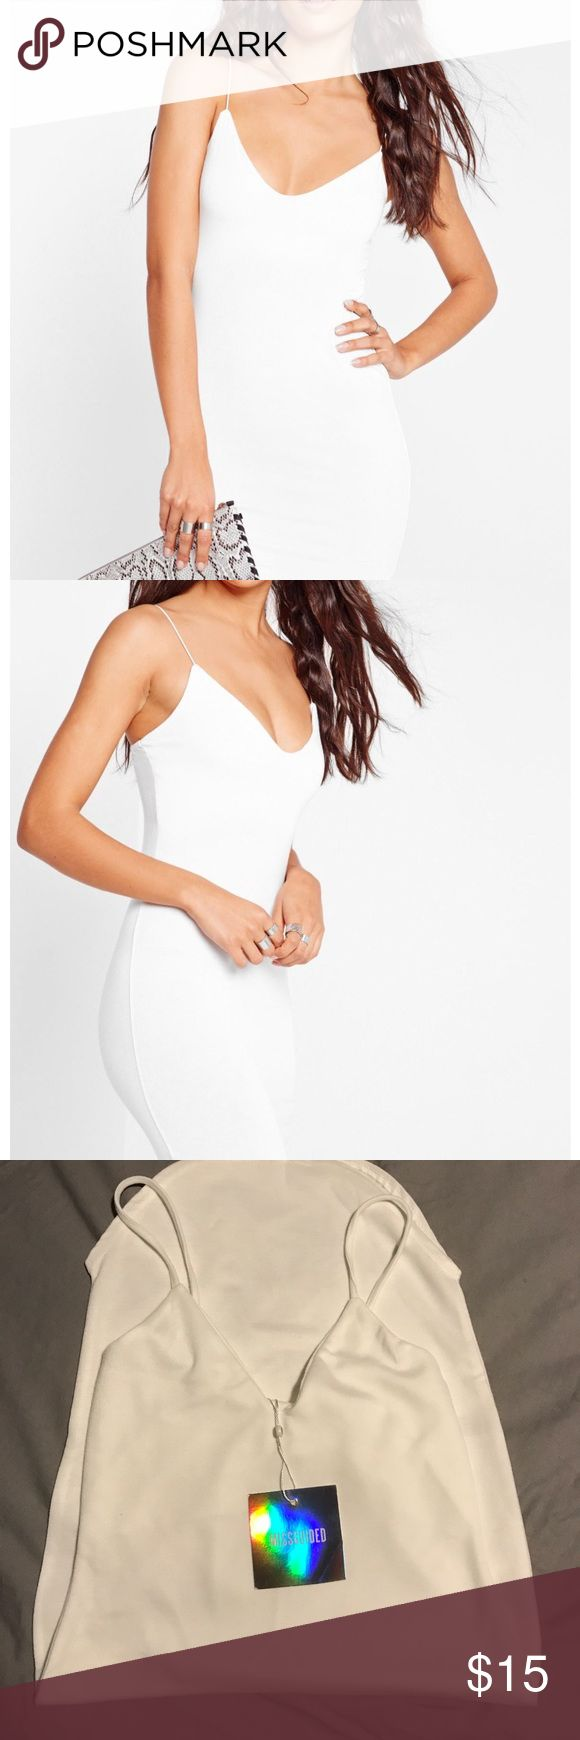 Misguided Strappy Curve Hem Midi Dress Brand new with tags, size 6, runs small best for size 2-4 in my opinion. Misguided Dresses Midi